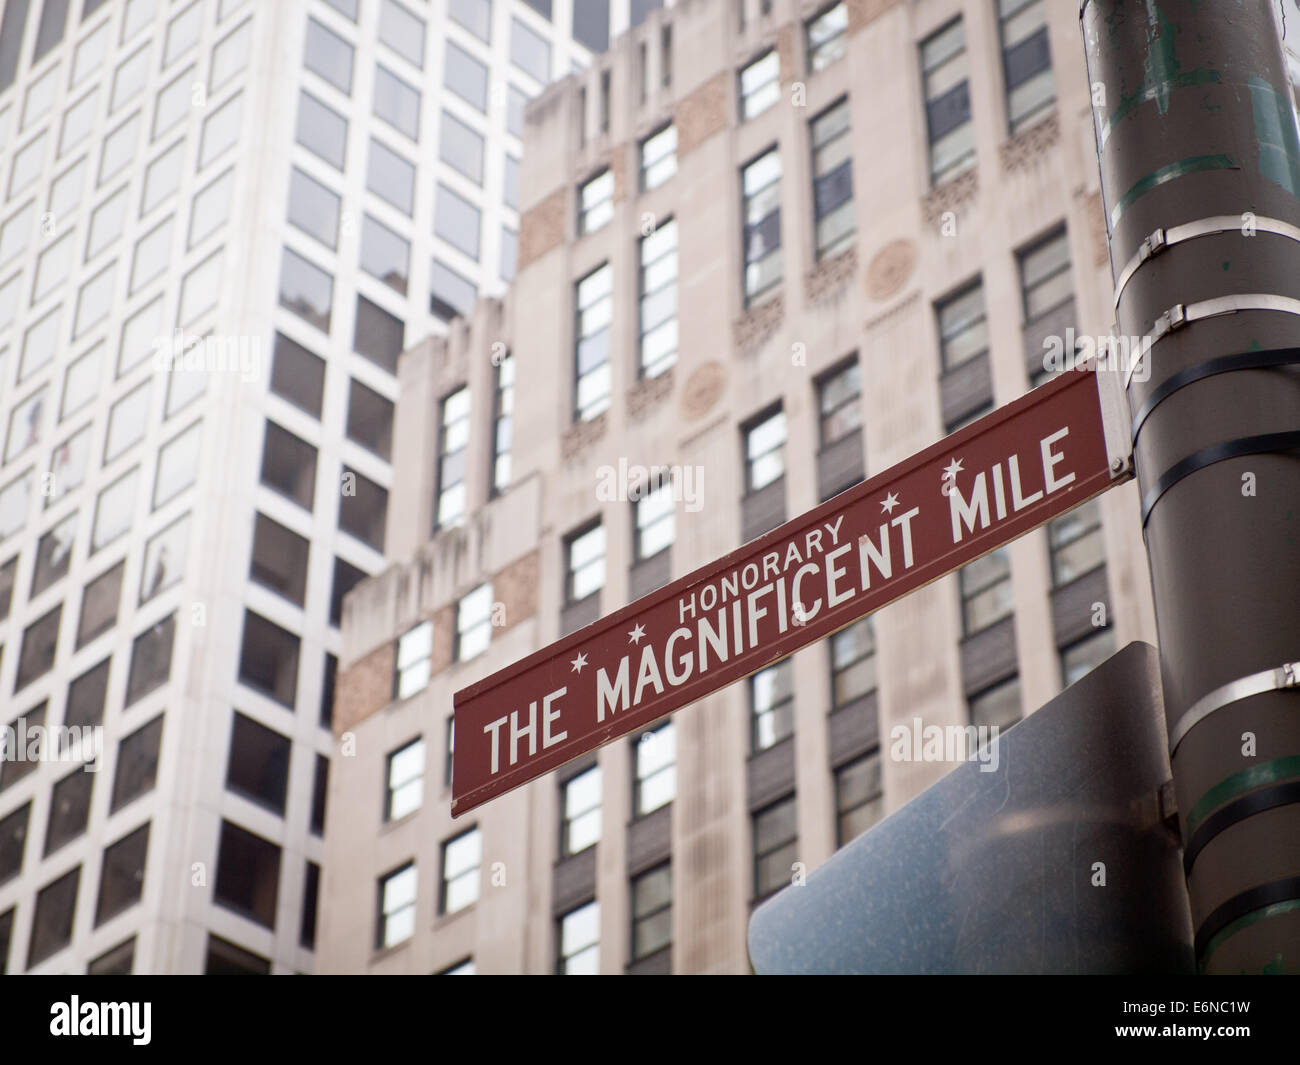 Magnificent Mile Chicago Stock Photos  Magnificent Mile Chicago - Chicago map miracle mile